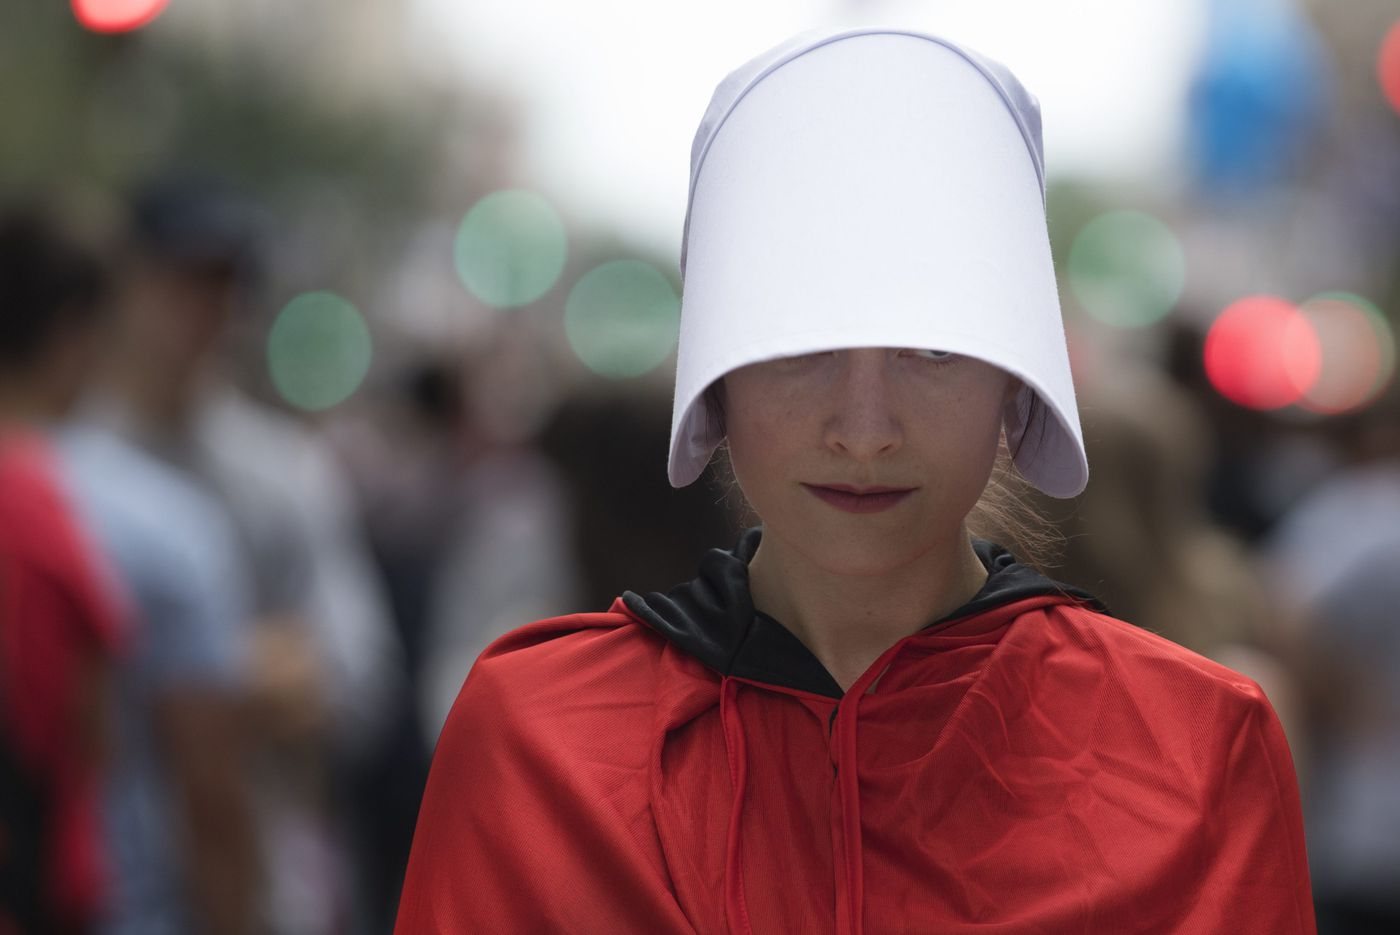 Why I helped organize the 'Handmaids' protest of Mike Pence | Opinion